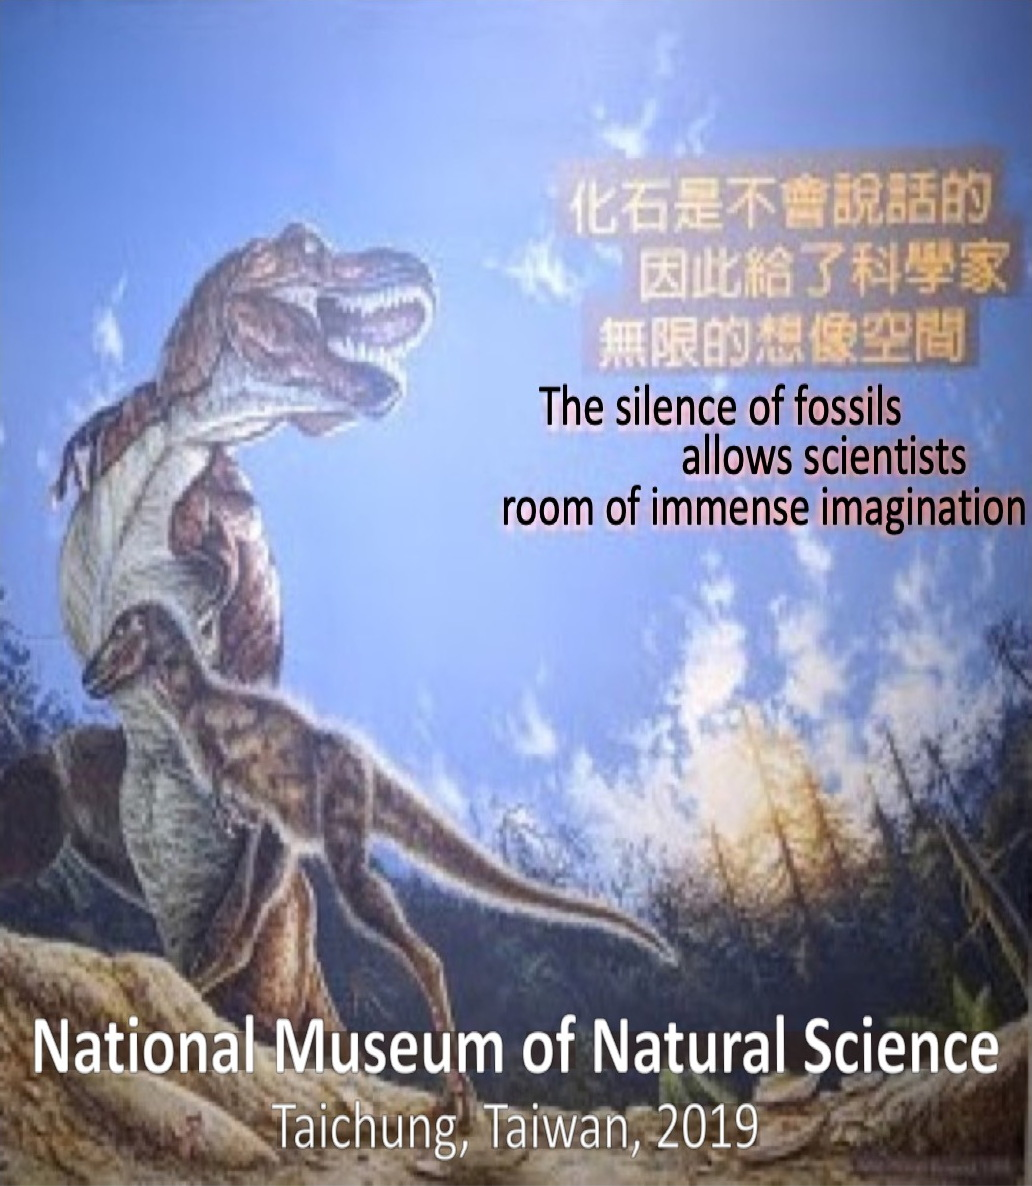 Refereshing transparency in an exhibit in Taiwan's Nat'l Museum, 2019: The silence of fossils allows scientists room of immense imagination